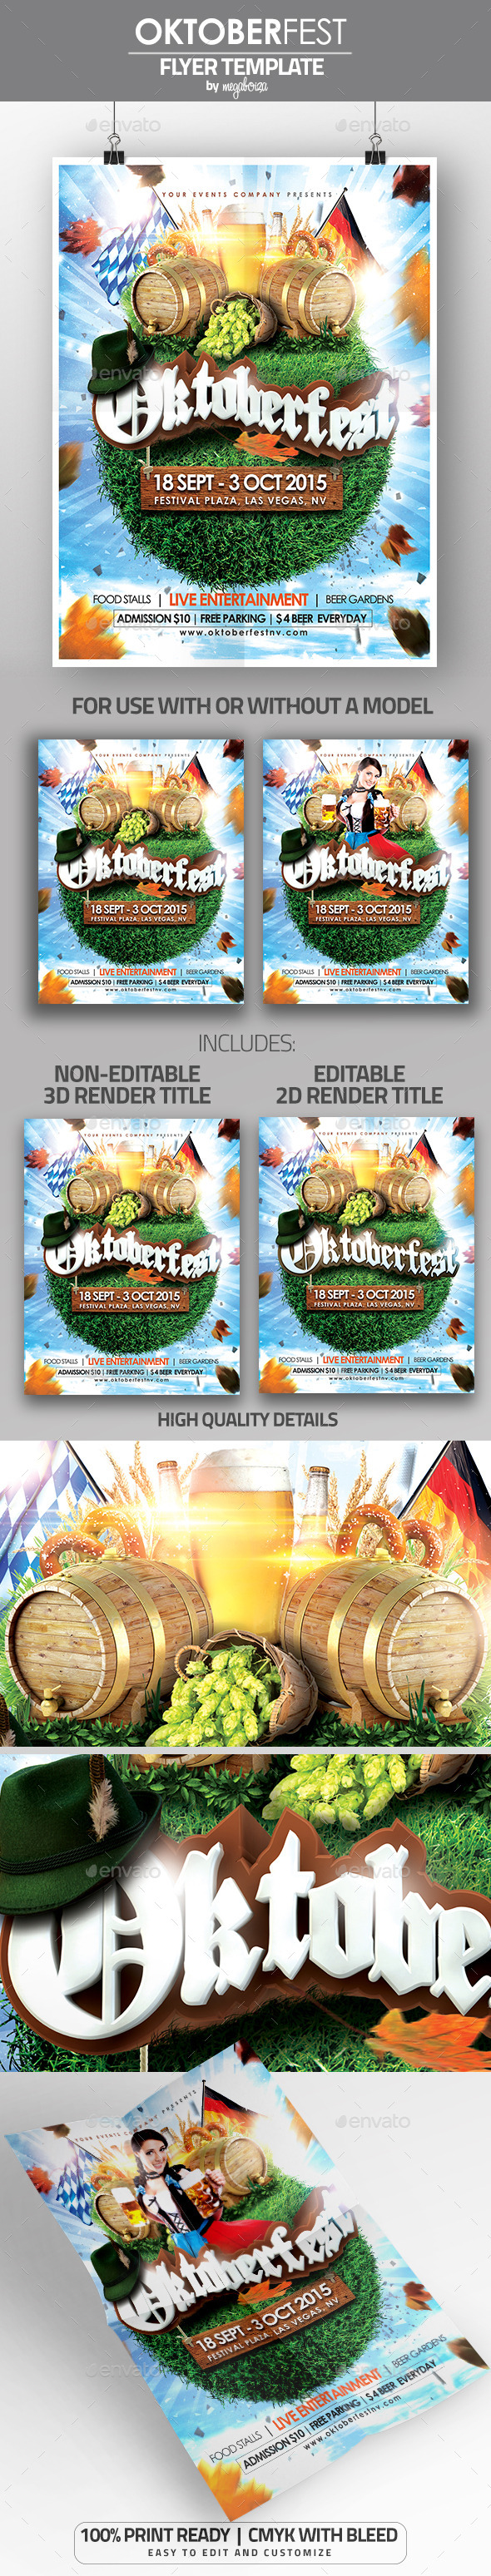 Oktoberfest Flyer / Poster Template - Events Flyers